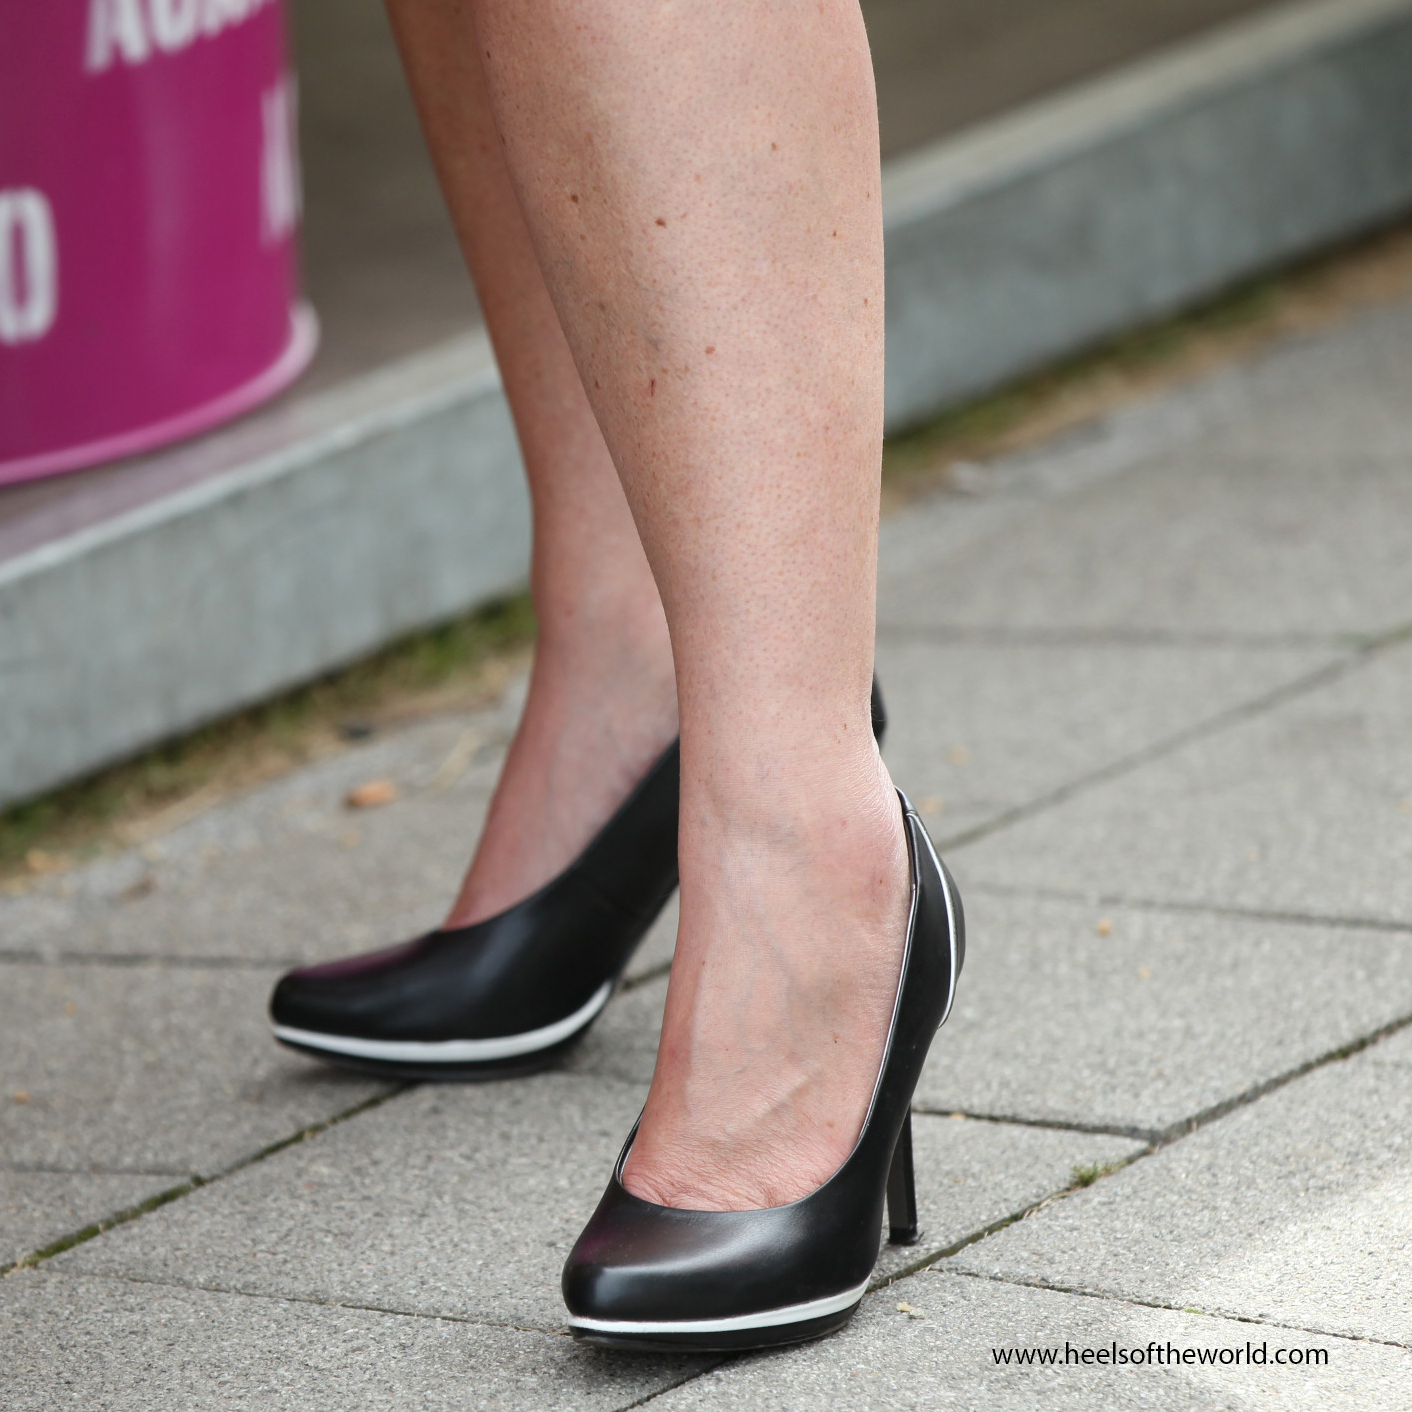 Dutch heels. Black pumps at Jazz event in Hillegersberg (Rotterdam/NL)